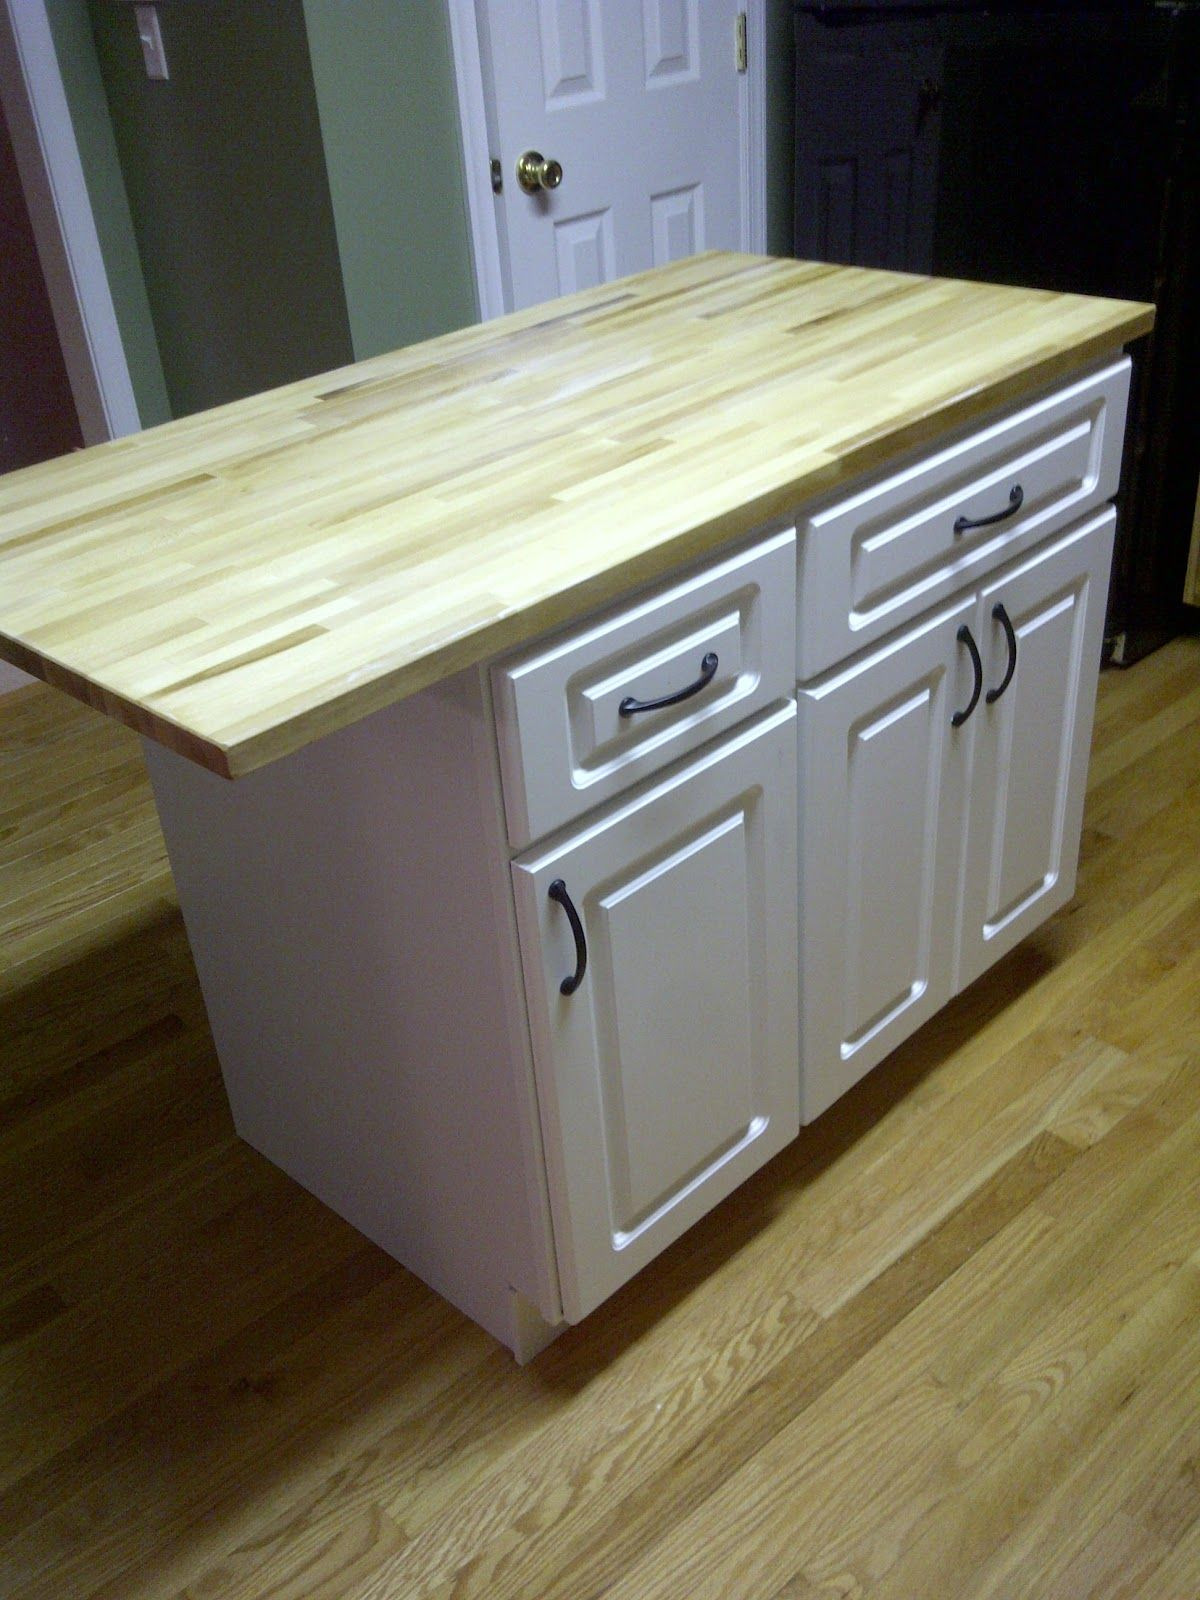 DIY Kitchen island... cheap kitchen cabinets and a countertop... easy